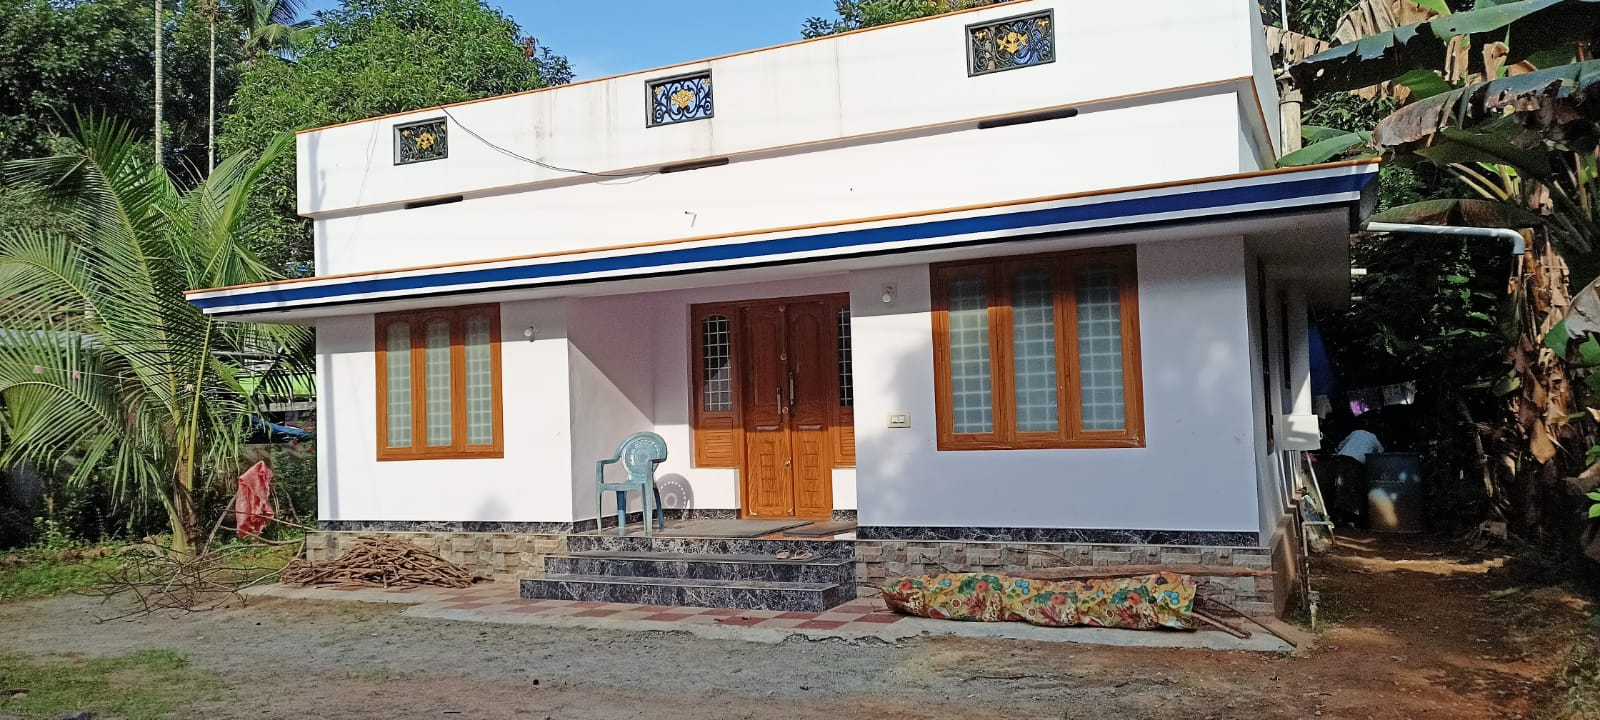 1026 Sq Ft 3BHK Beautiful House and Free Plan, 15 Lacks